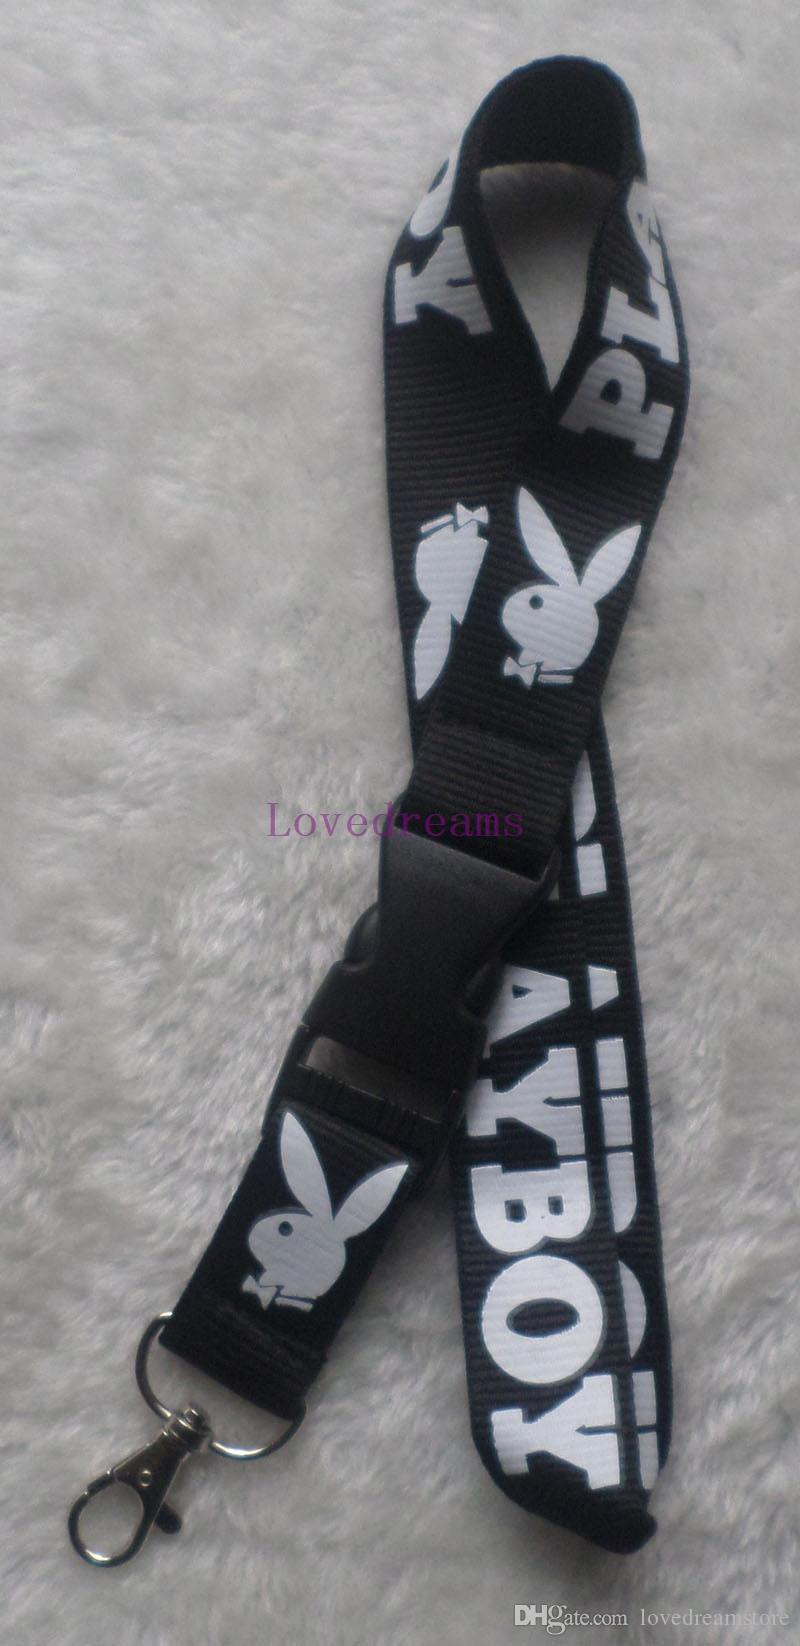 New Clothing brand playboy Lanyards Detachable ID Badge Holder Assorted Colors Brand New Black